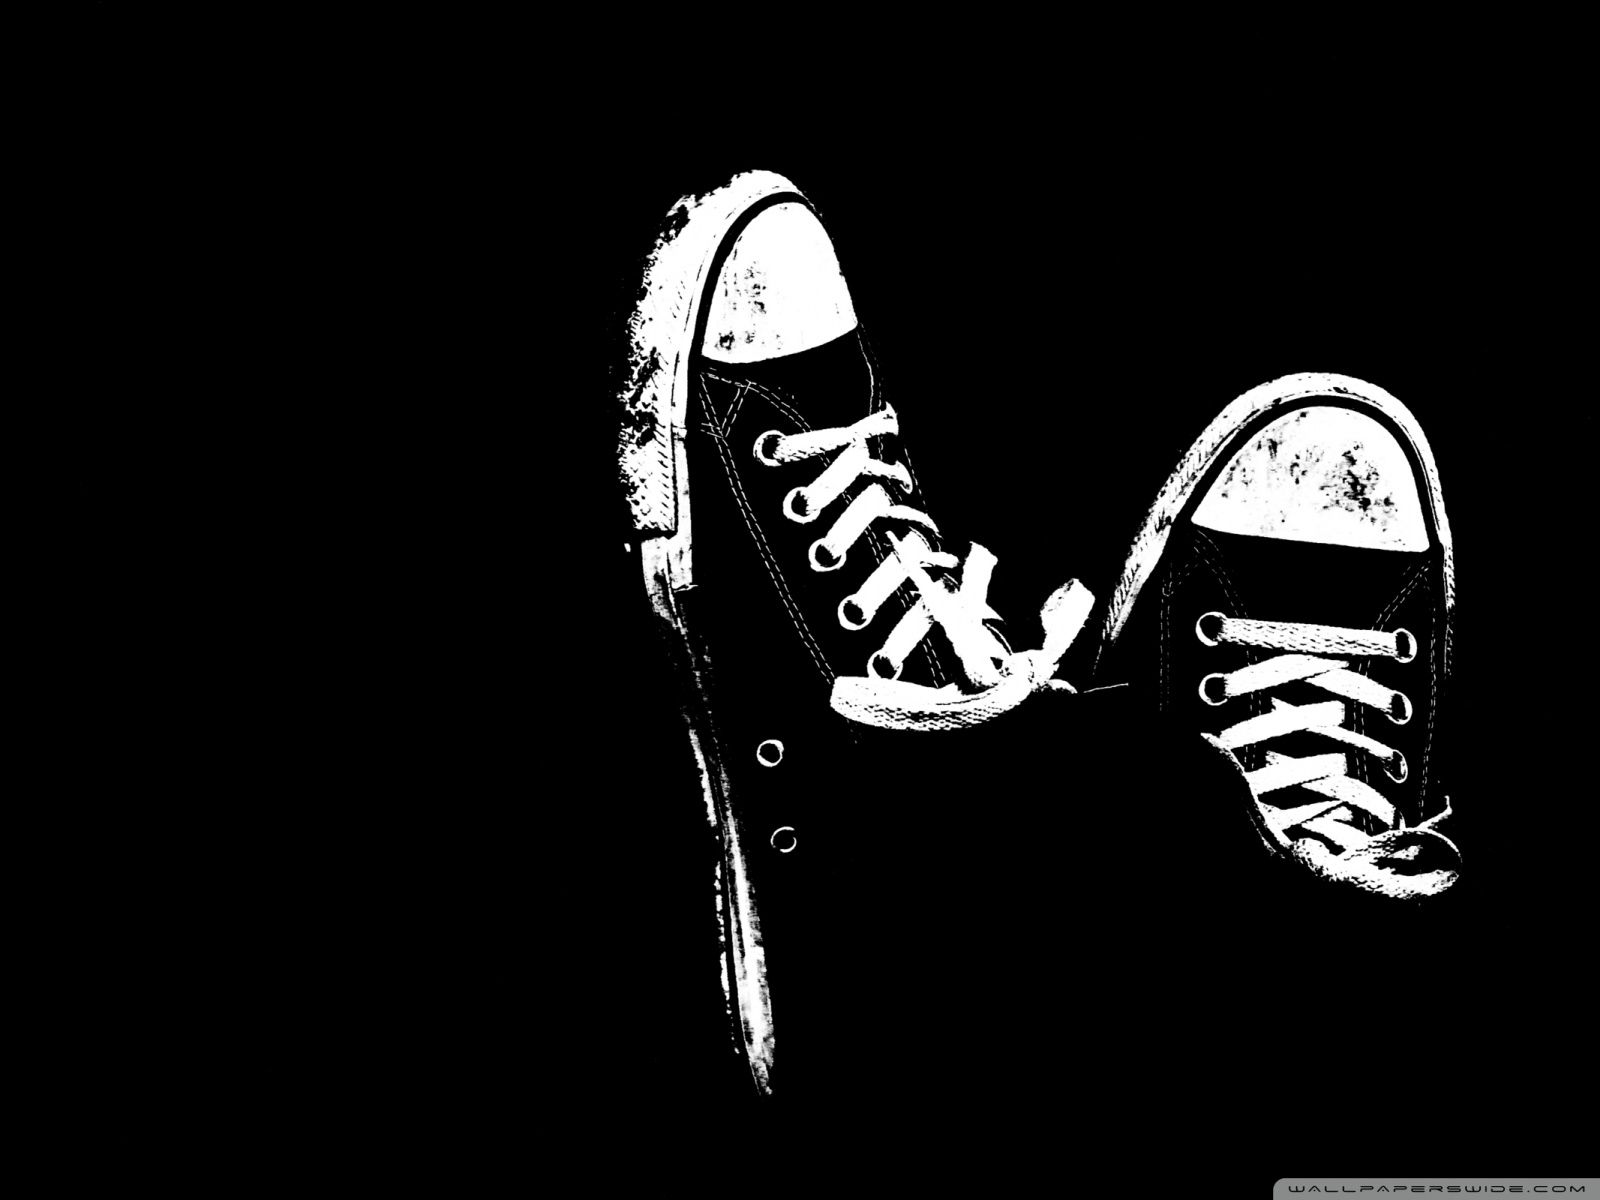 Sneakers Black And White Hd Desktop Wallpaper High Definition Fullscreen Mobile Black Hd Wallpaper Black And White Wallpaper Iphone Shoes Wallpaper